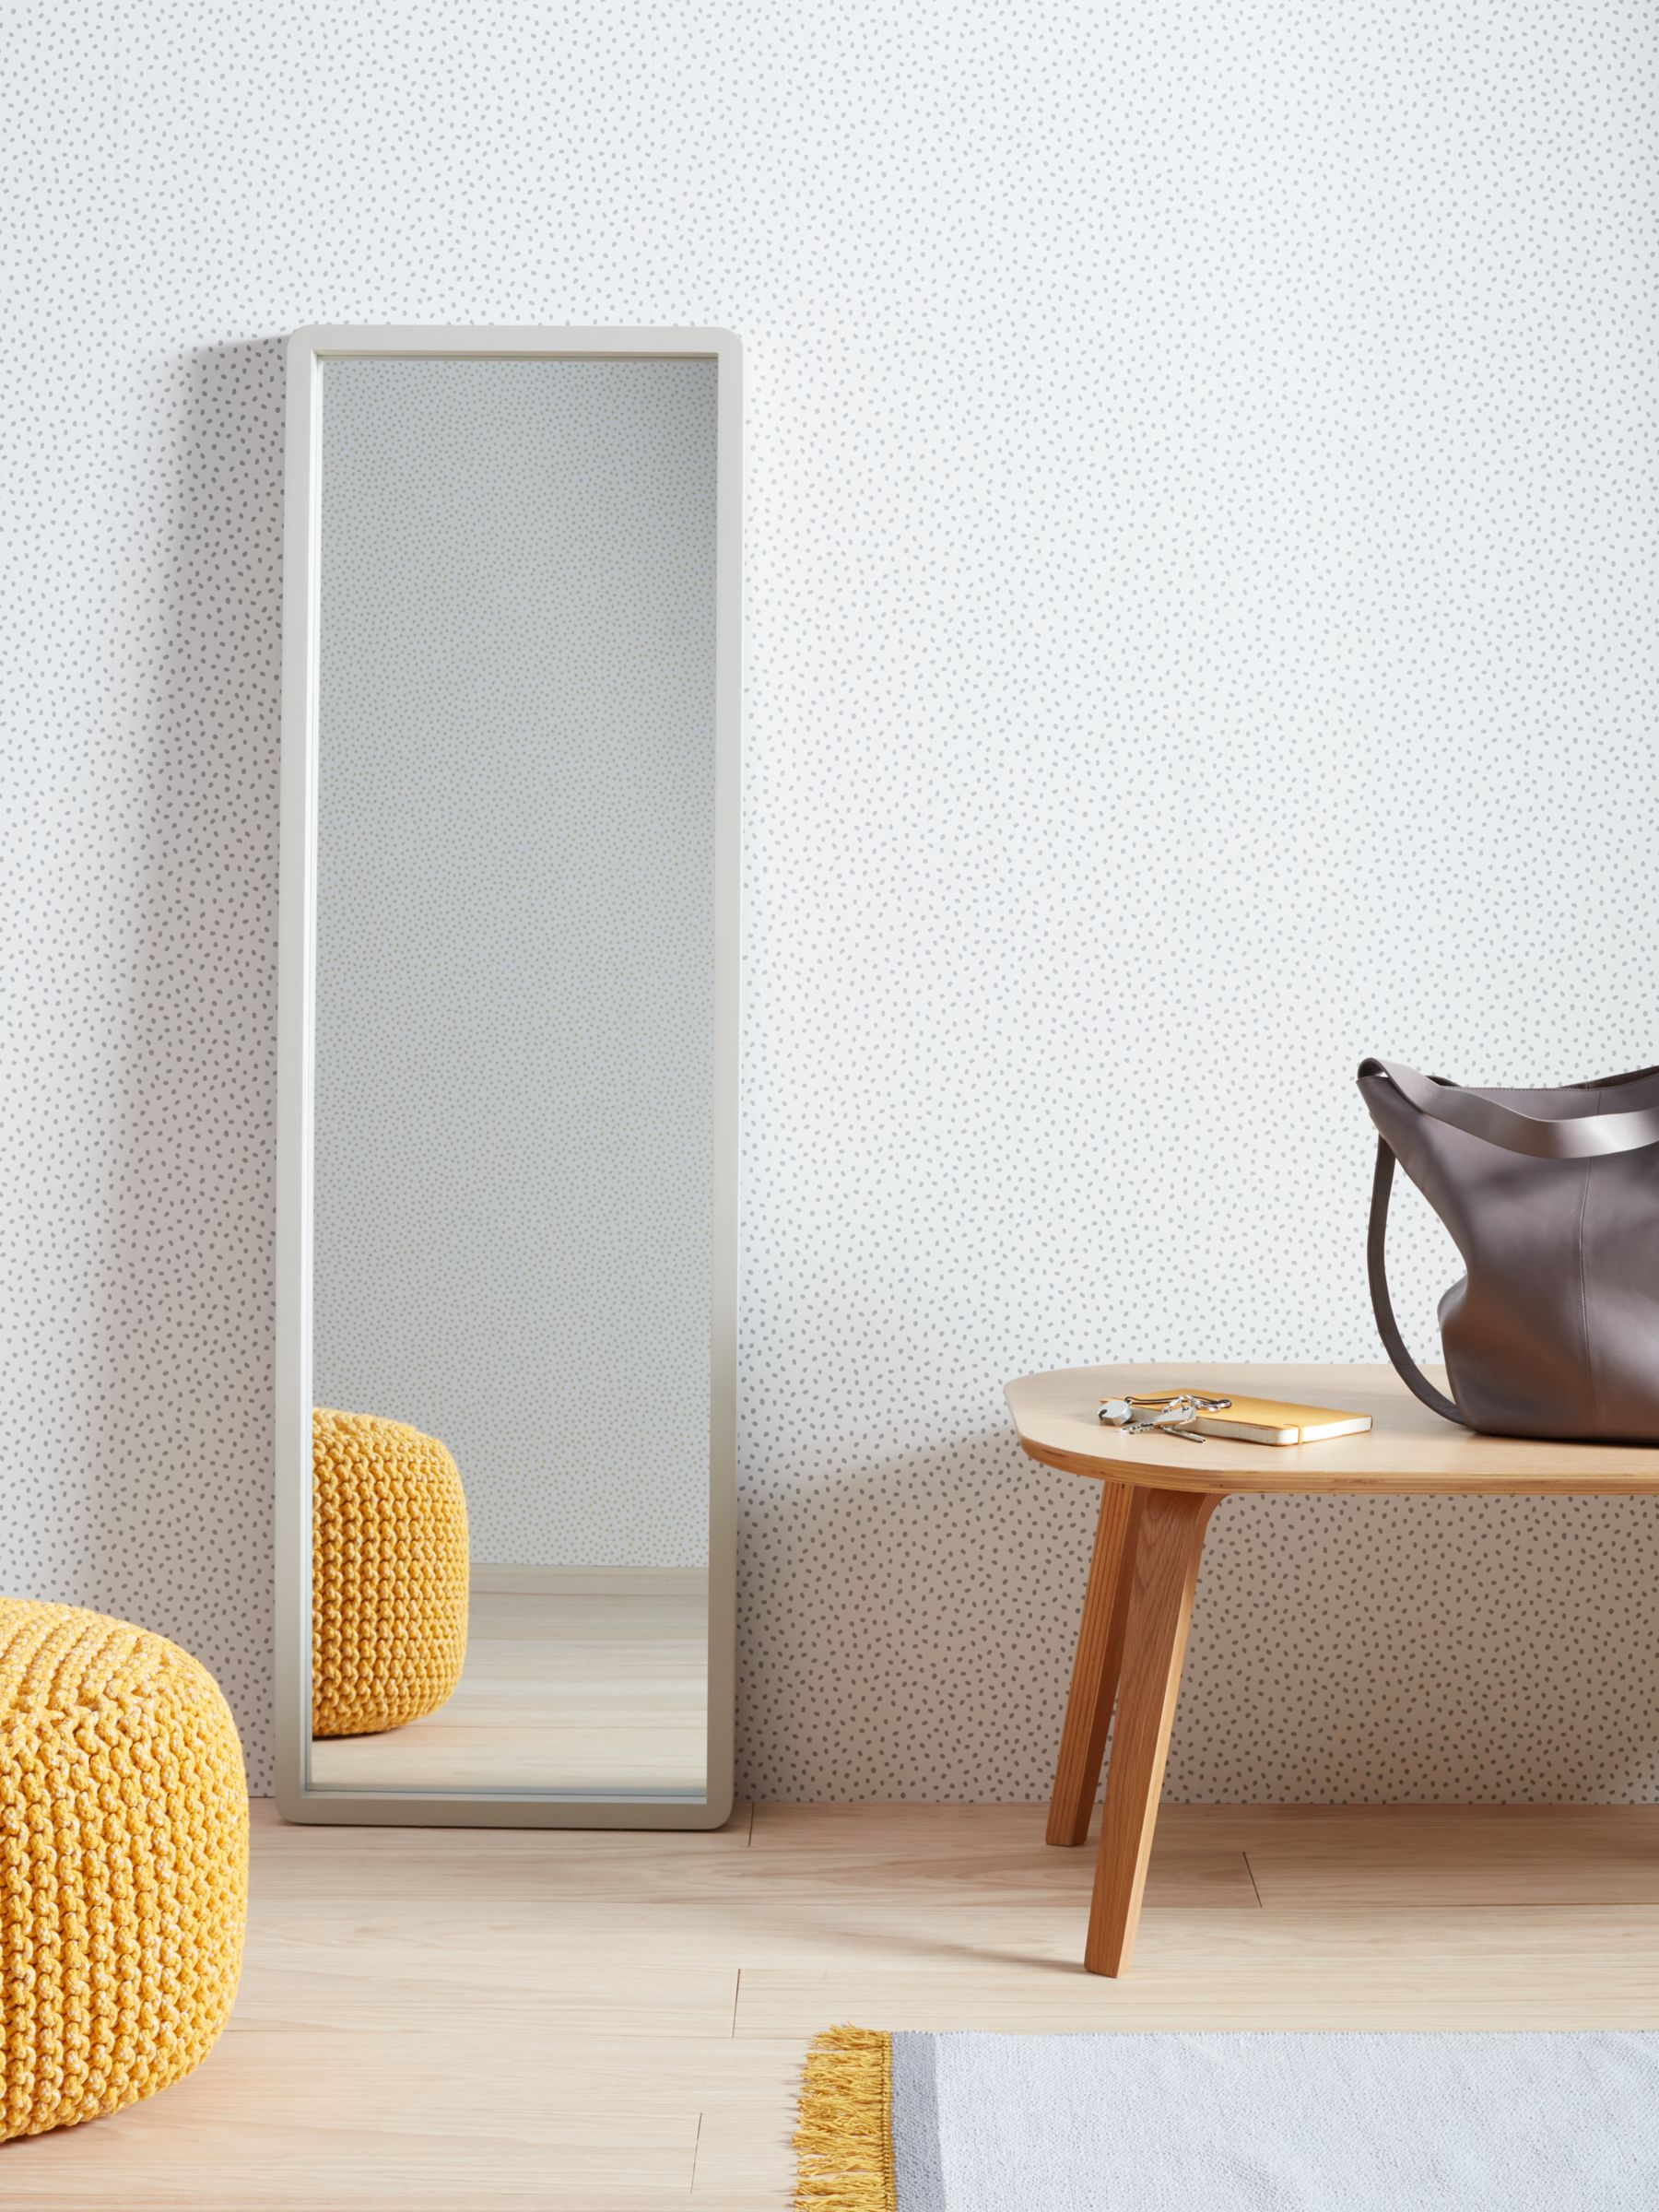 House By John Lewis Rounded Corner Full Length Mirror 140 X 40cm Grey At John Lewis Partners